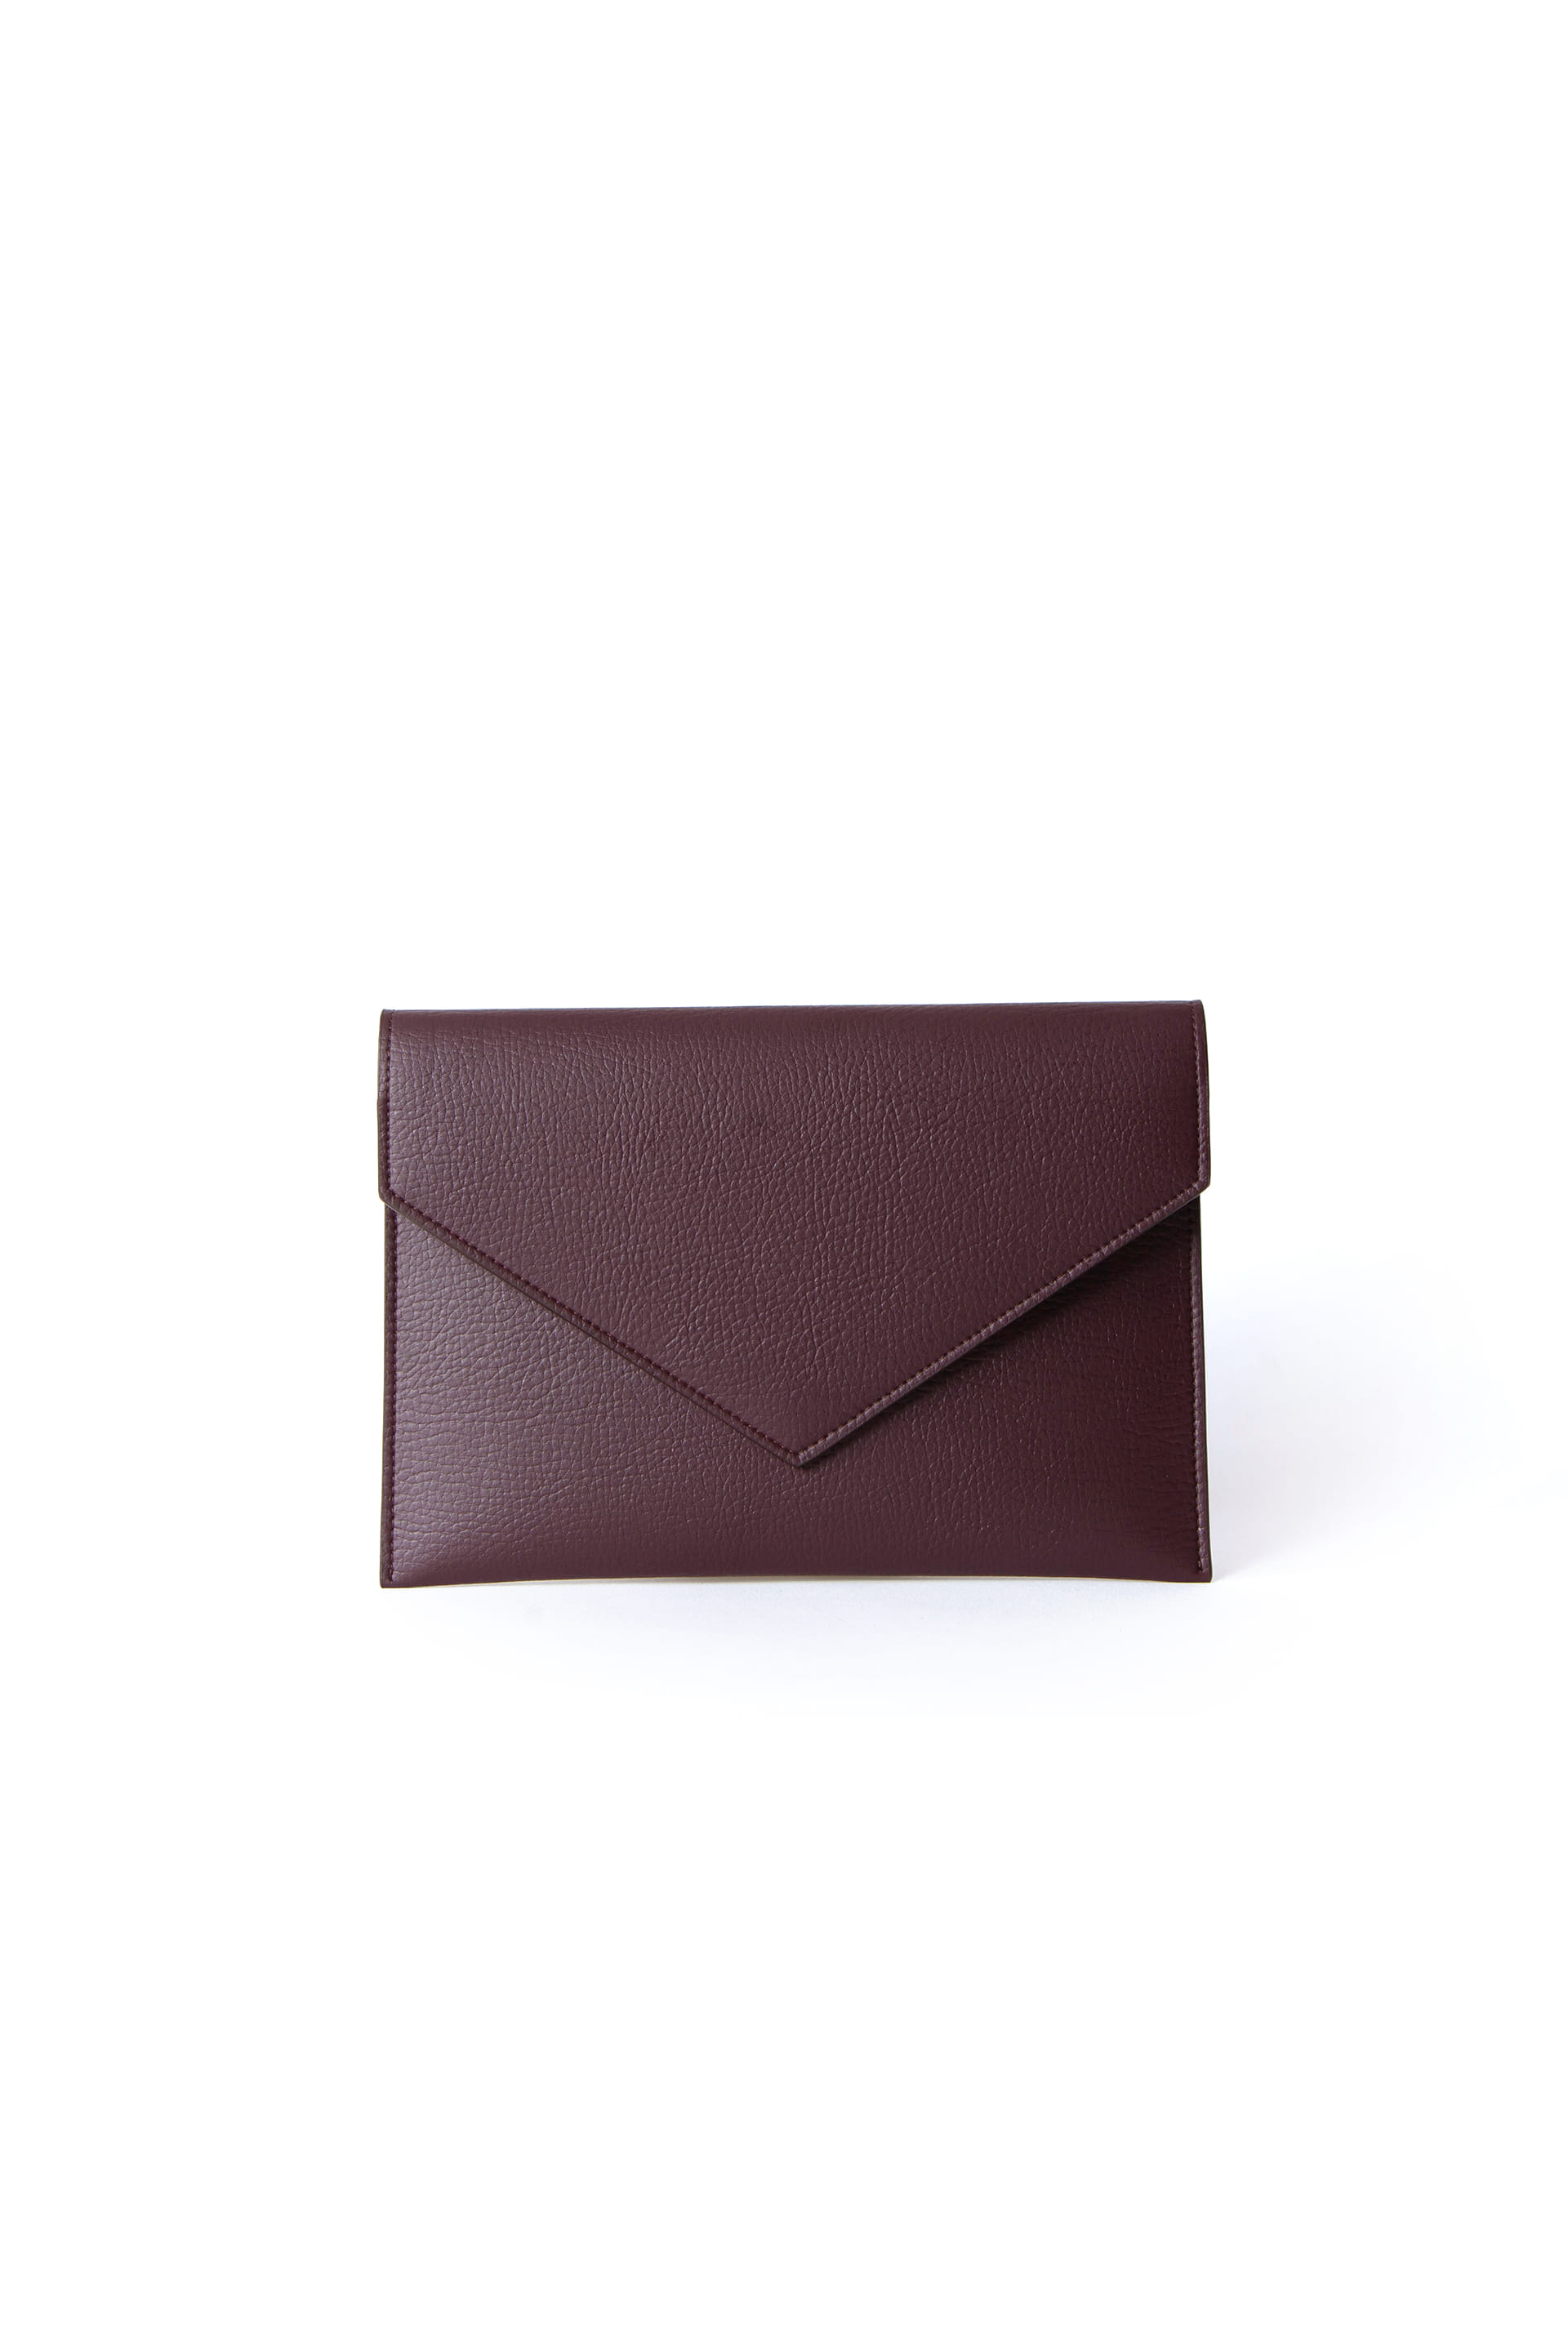 COSMETIC CLUTCH 16 Dark Chocolate